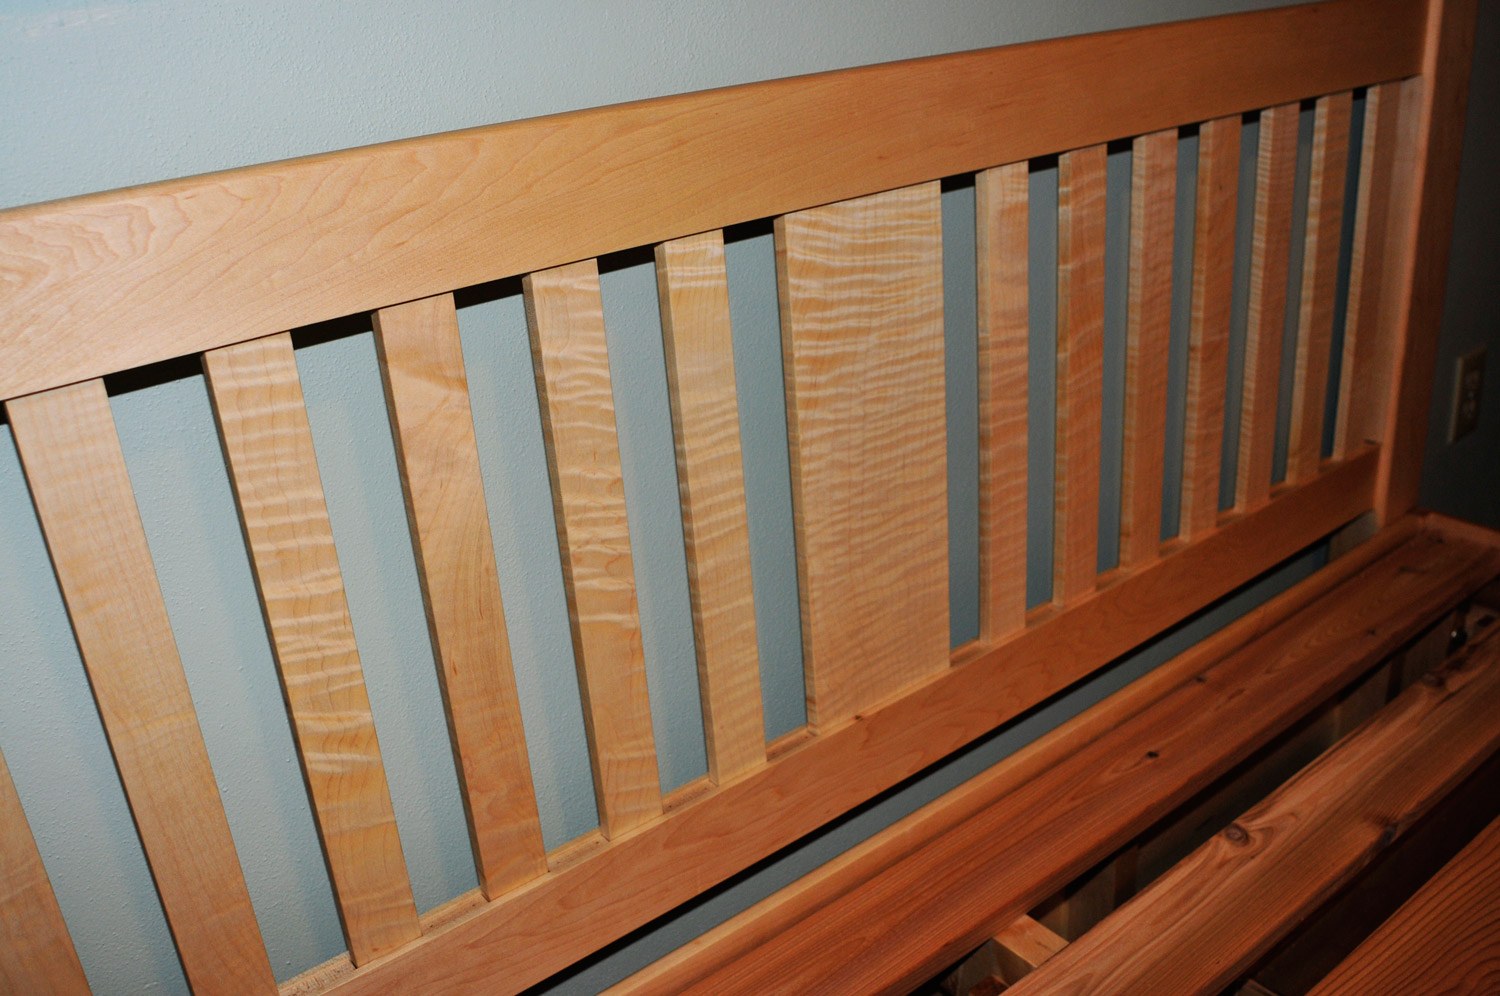 Curly maple slats on headboard